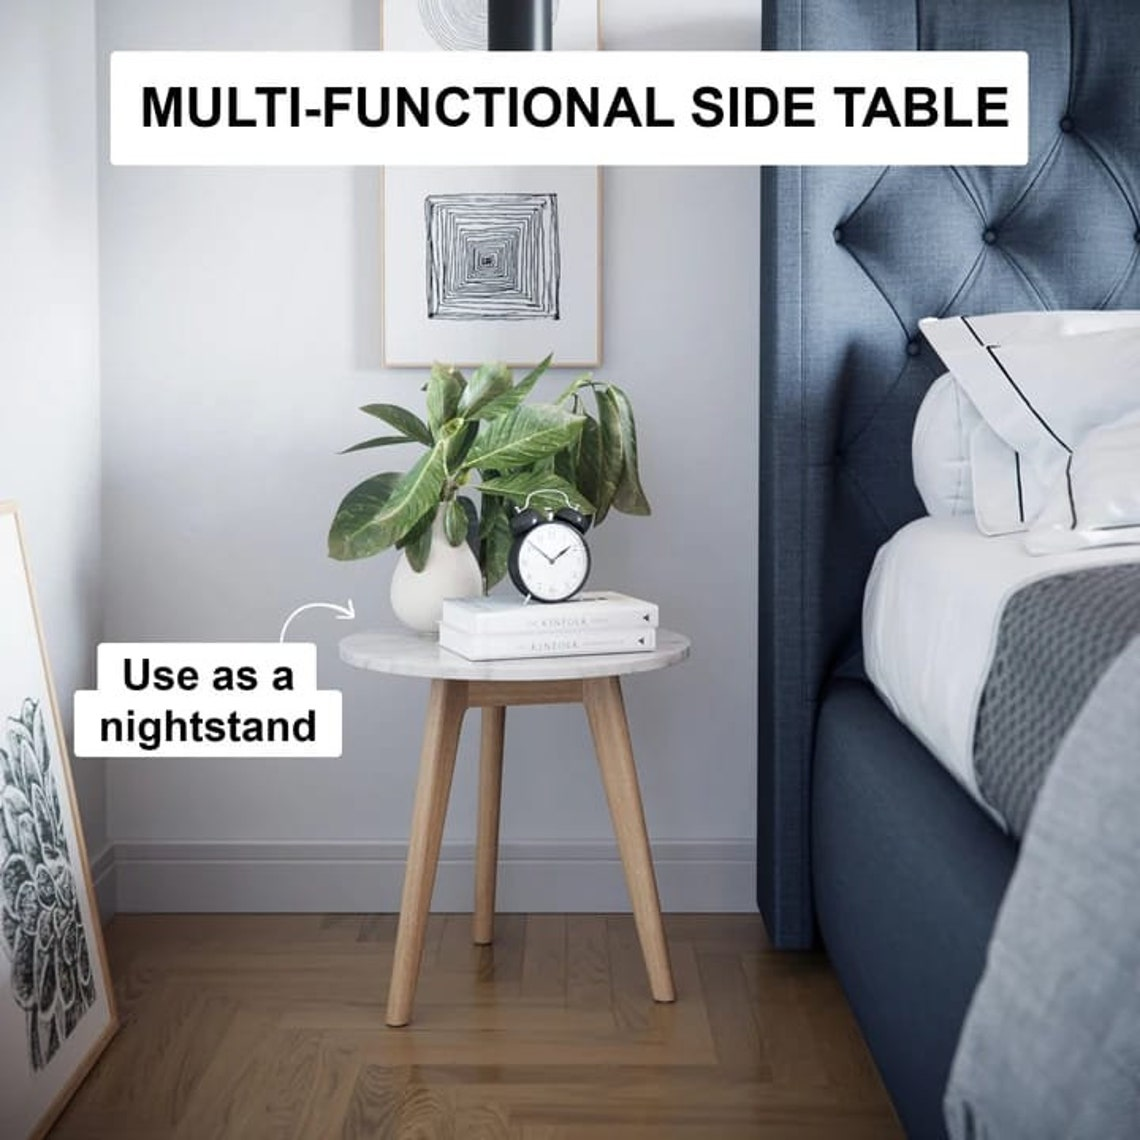 Mid Century Side Table - Multi-Functional Side Table - Solid Wood